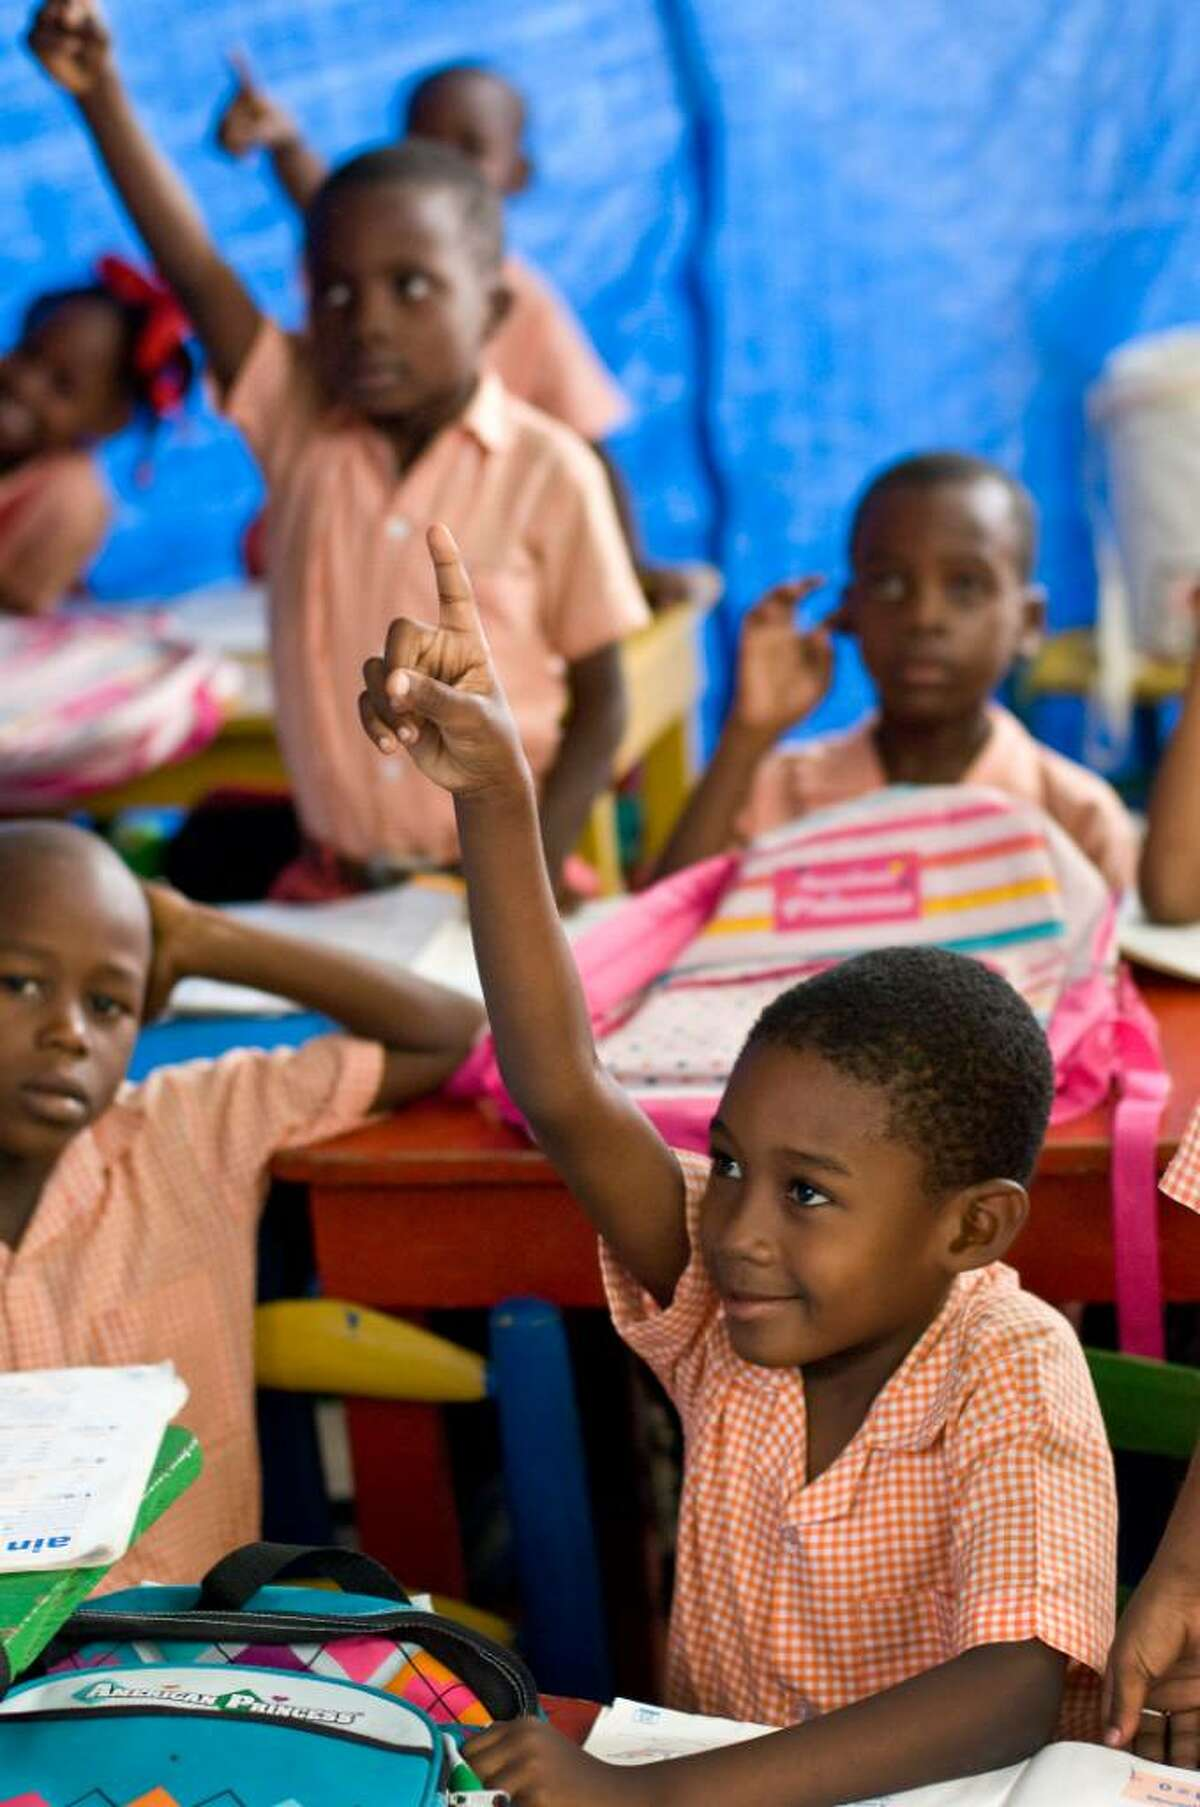 First grader Blaise Mihelitchy raises his hand at the Eddy Pascal school. Ecole Eddy Pascal was a cornerstone of the local community in Carrefour, Haiti, for over 25 years. Housed in an imposing three-story building, Ecole Eddy Pascal offered elementary and secondary school, classes for adults and a cultural club for the community. But the facility collapsed on January 12, and the school director, Eddy Pascal himself, began searching for a way to start over.